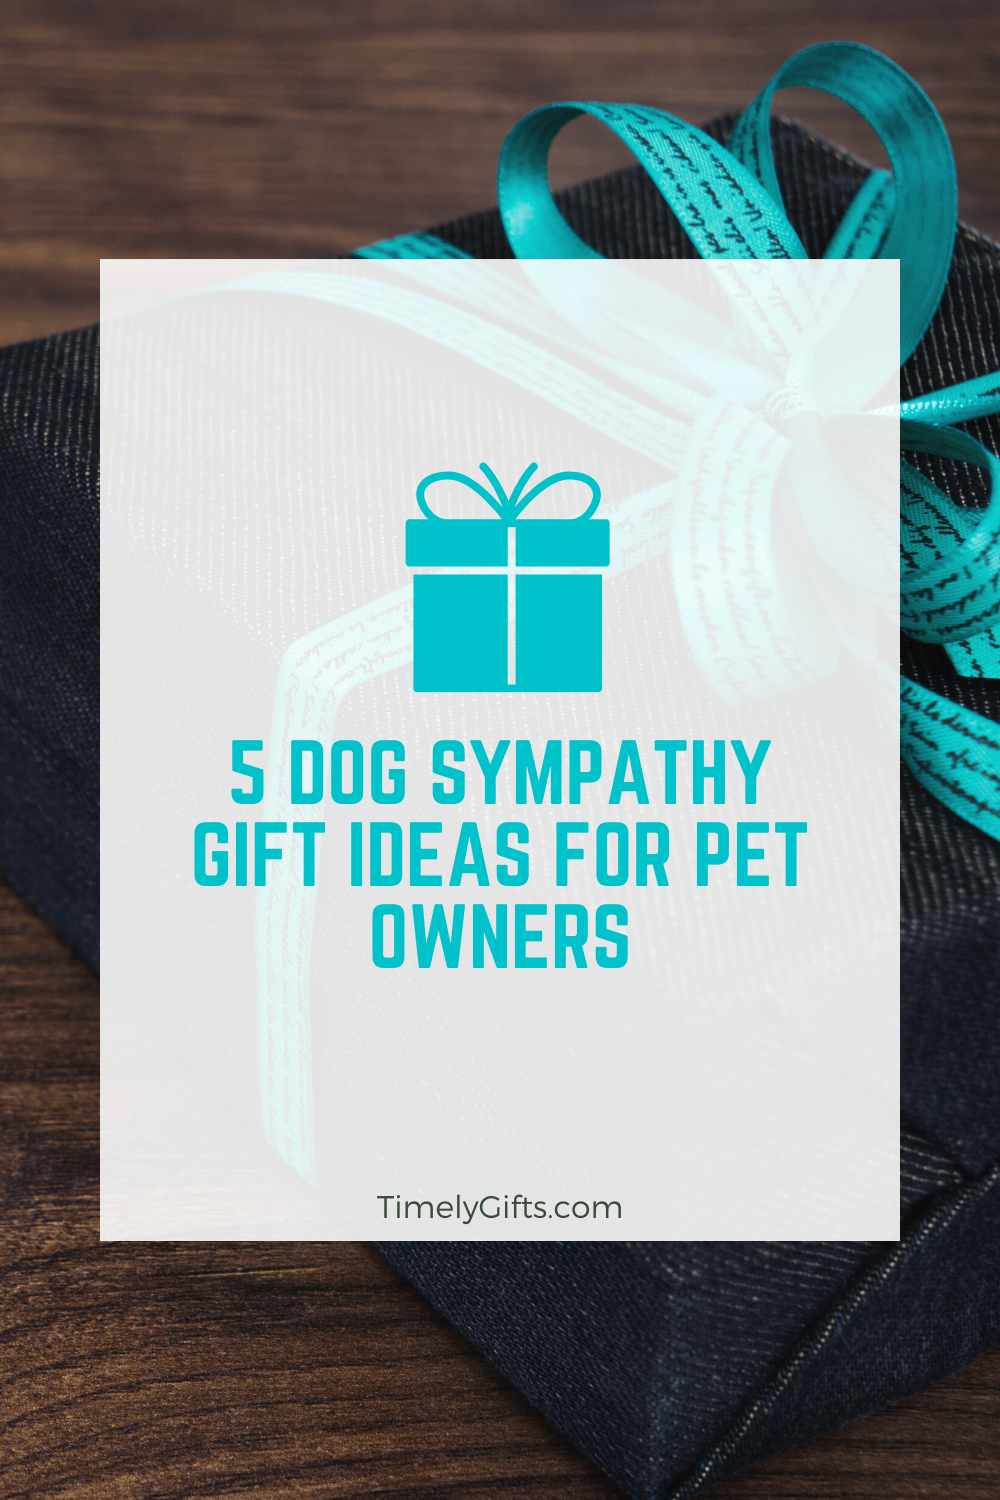 Looking for sympathy gift ideas for loss of dog? This article will contain some touching gift ideas for any pet owner you know. If someone you know has recently lost their dog, they may appriciate these gifts. Check out these gift ideas for owners of dogs who have passed. #petowners #giftideas #sympathygifts #doggifts #passedpets #passeddog #pets #gifts #sympathy #greatgifts #touchinggifts